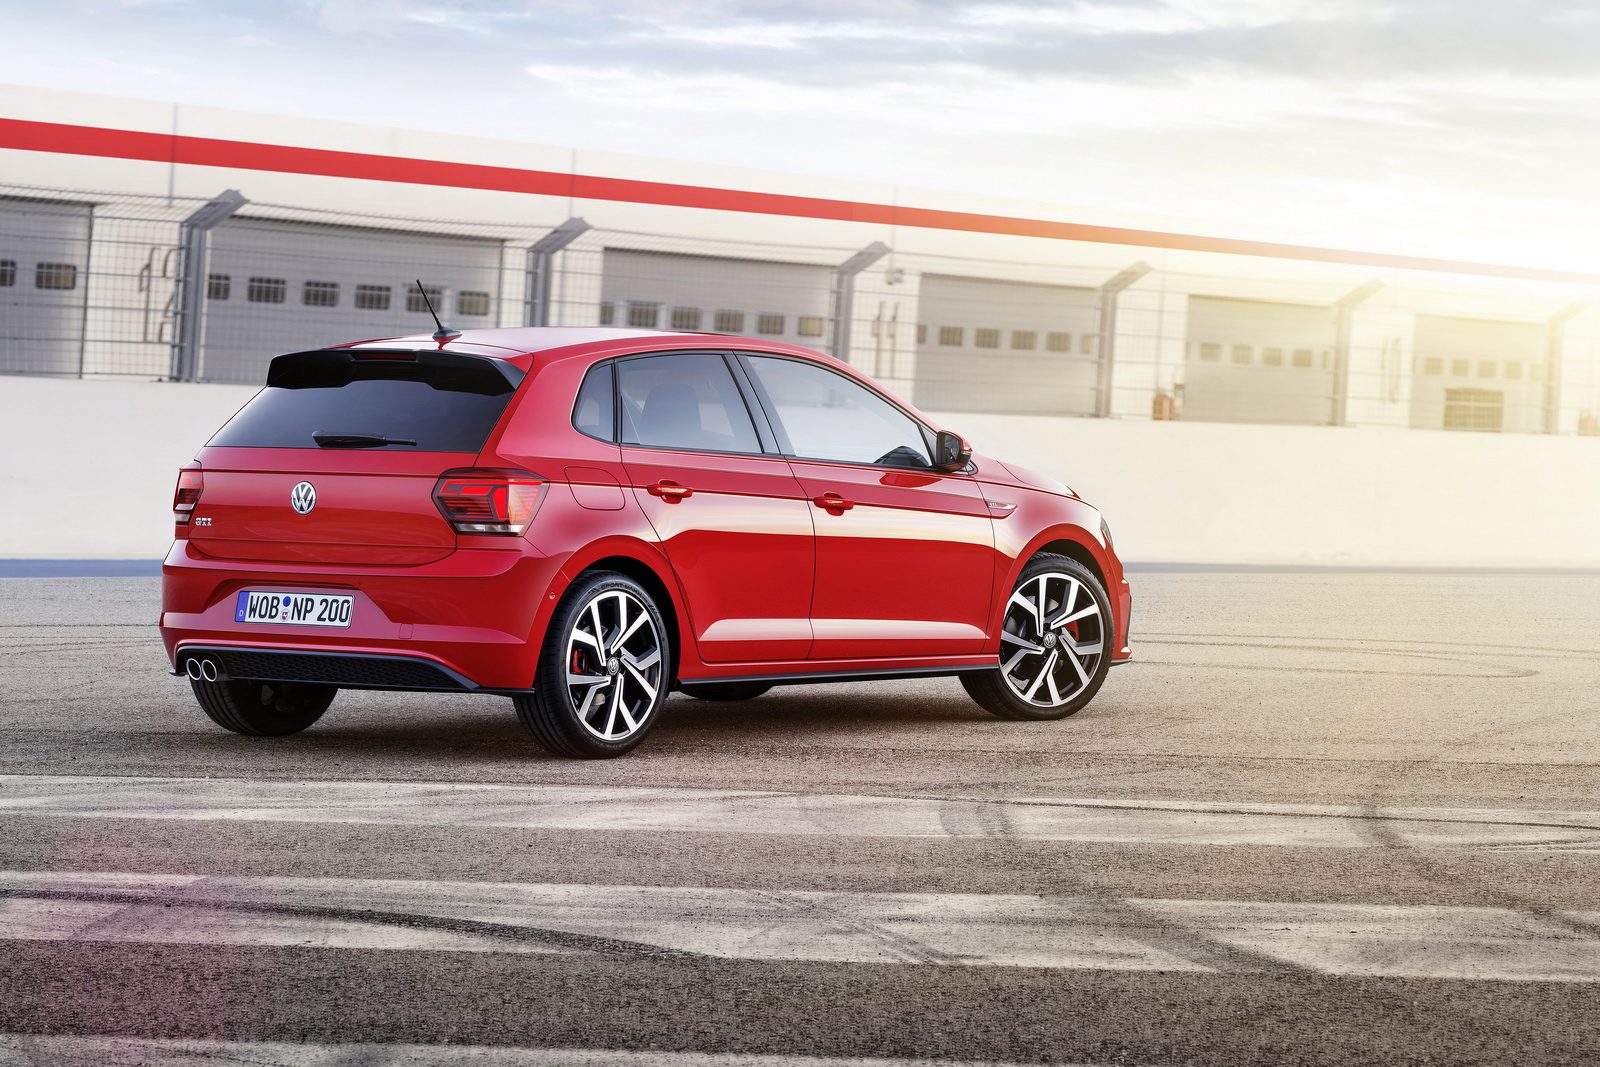 Volkswagen Polo and Polo GTI 2018 (46)